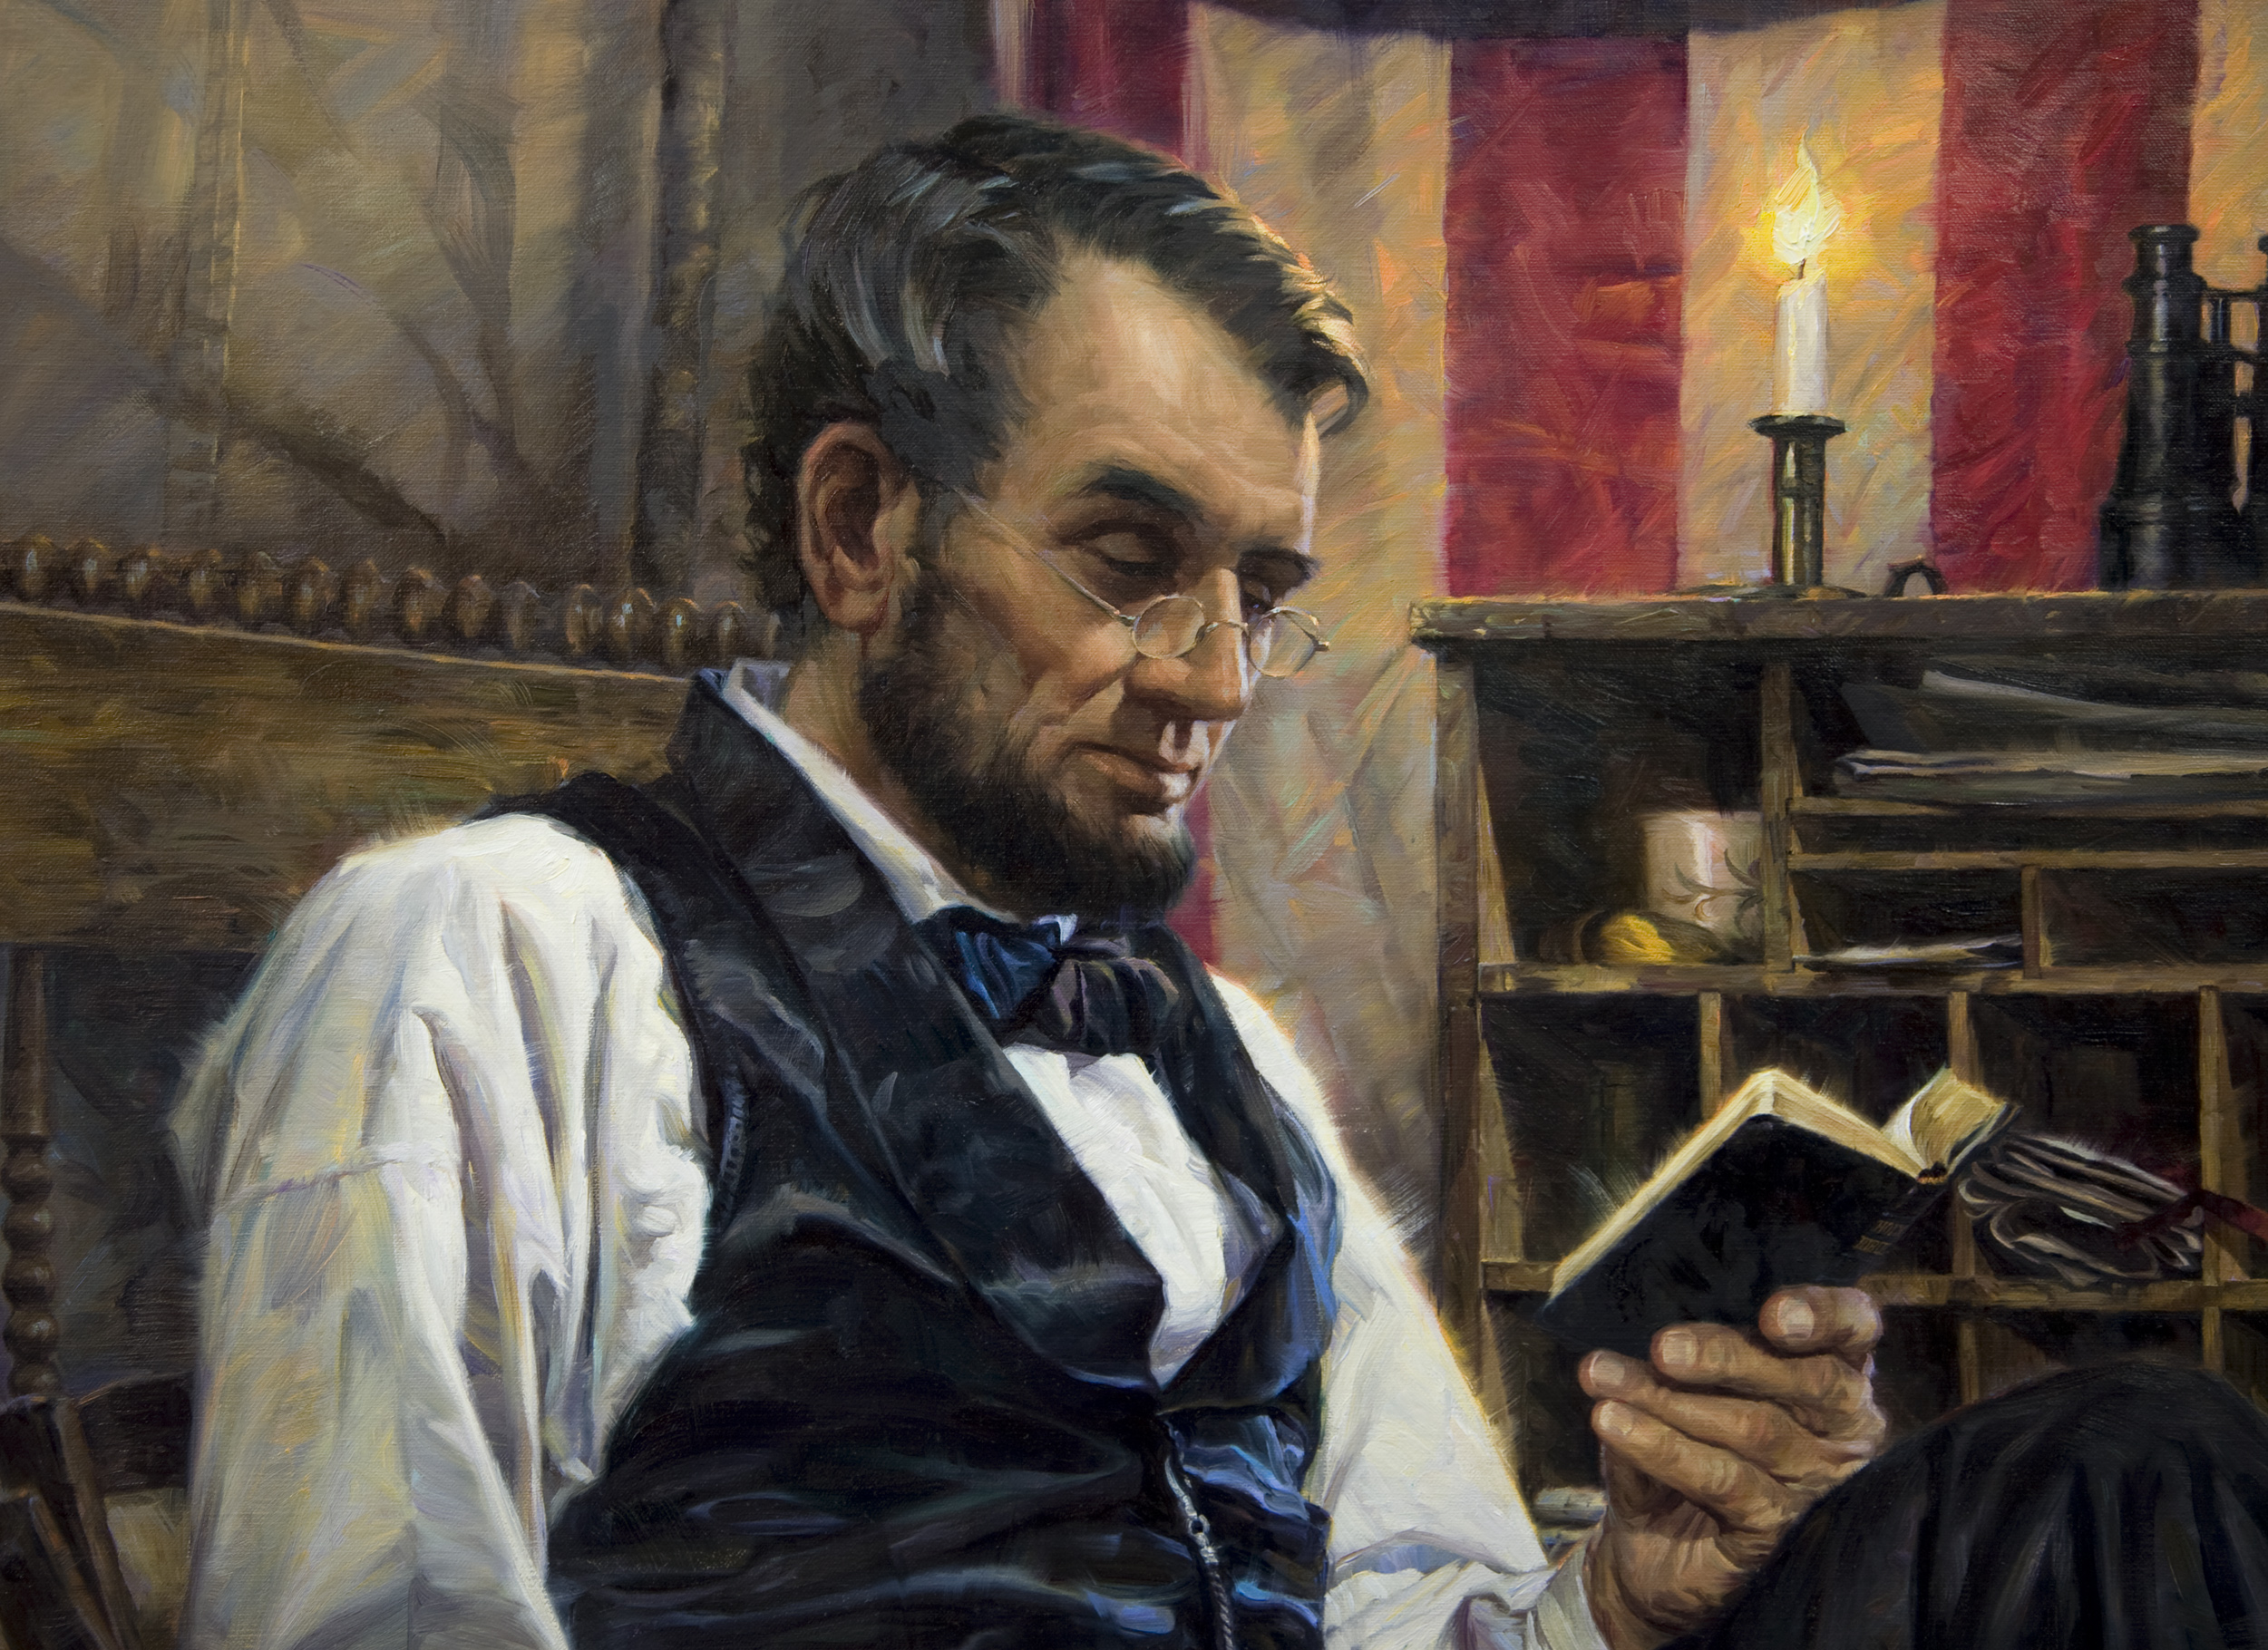 an analysis of the presidency of abraham lincoln Mary todd lincoln's unusually stormy moods, coupled with rumors of delusions,   abraham lincoln, to become not merely the president but one of  a book,  the physical lincoln, a medical analysis of abraham lincoln.